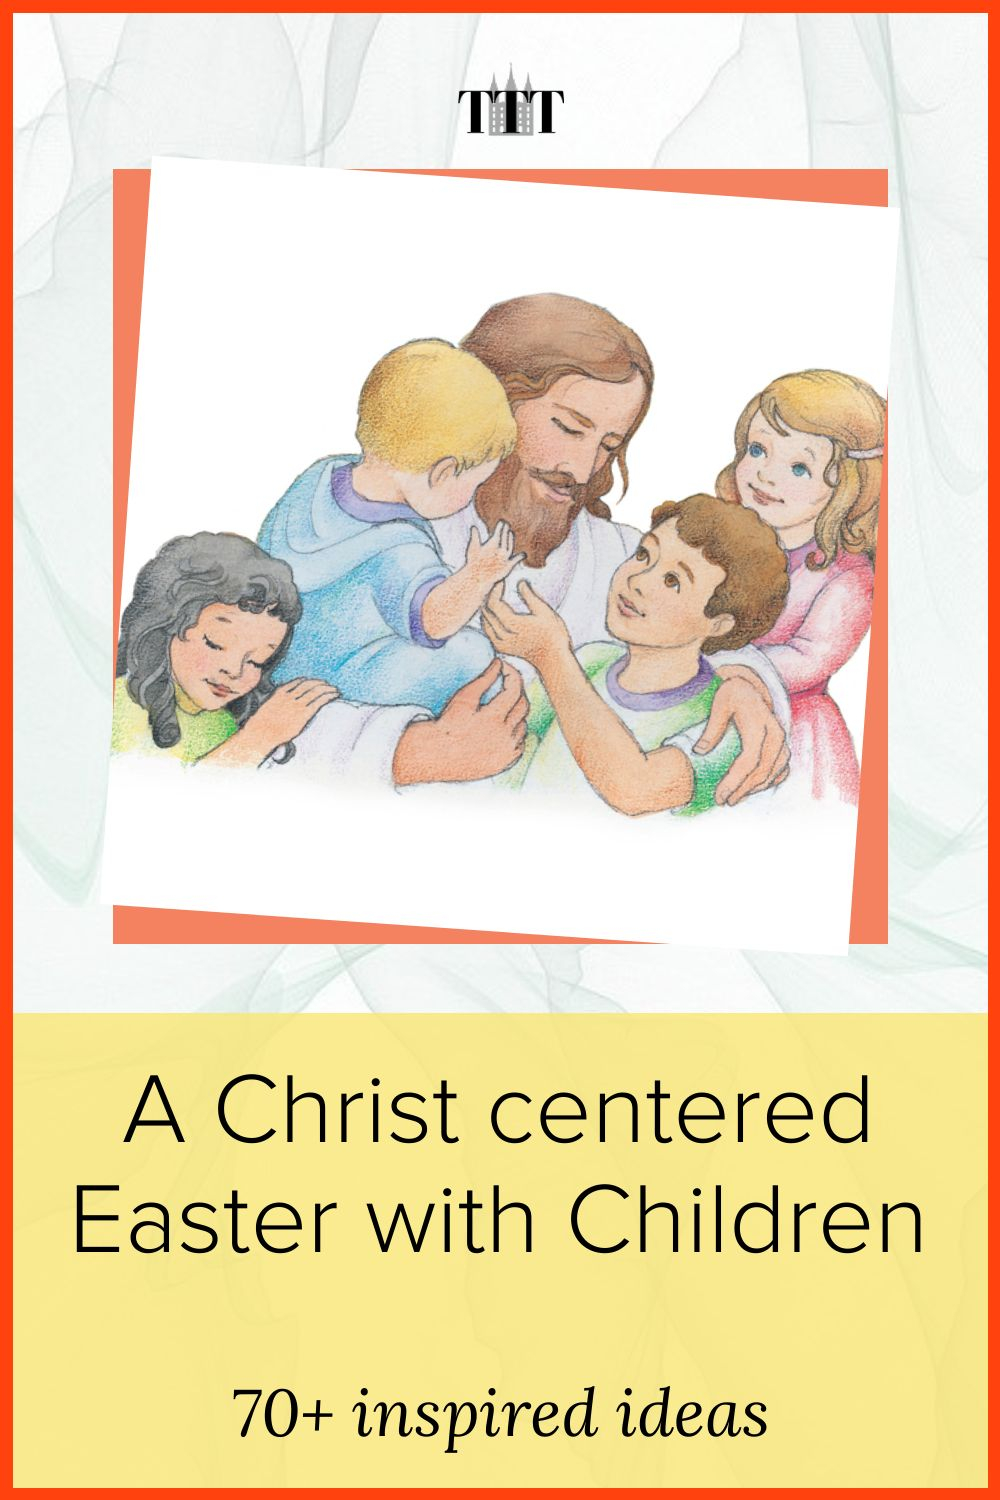 A Christ centered Easter with Children: 70+ inspired ideas